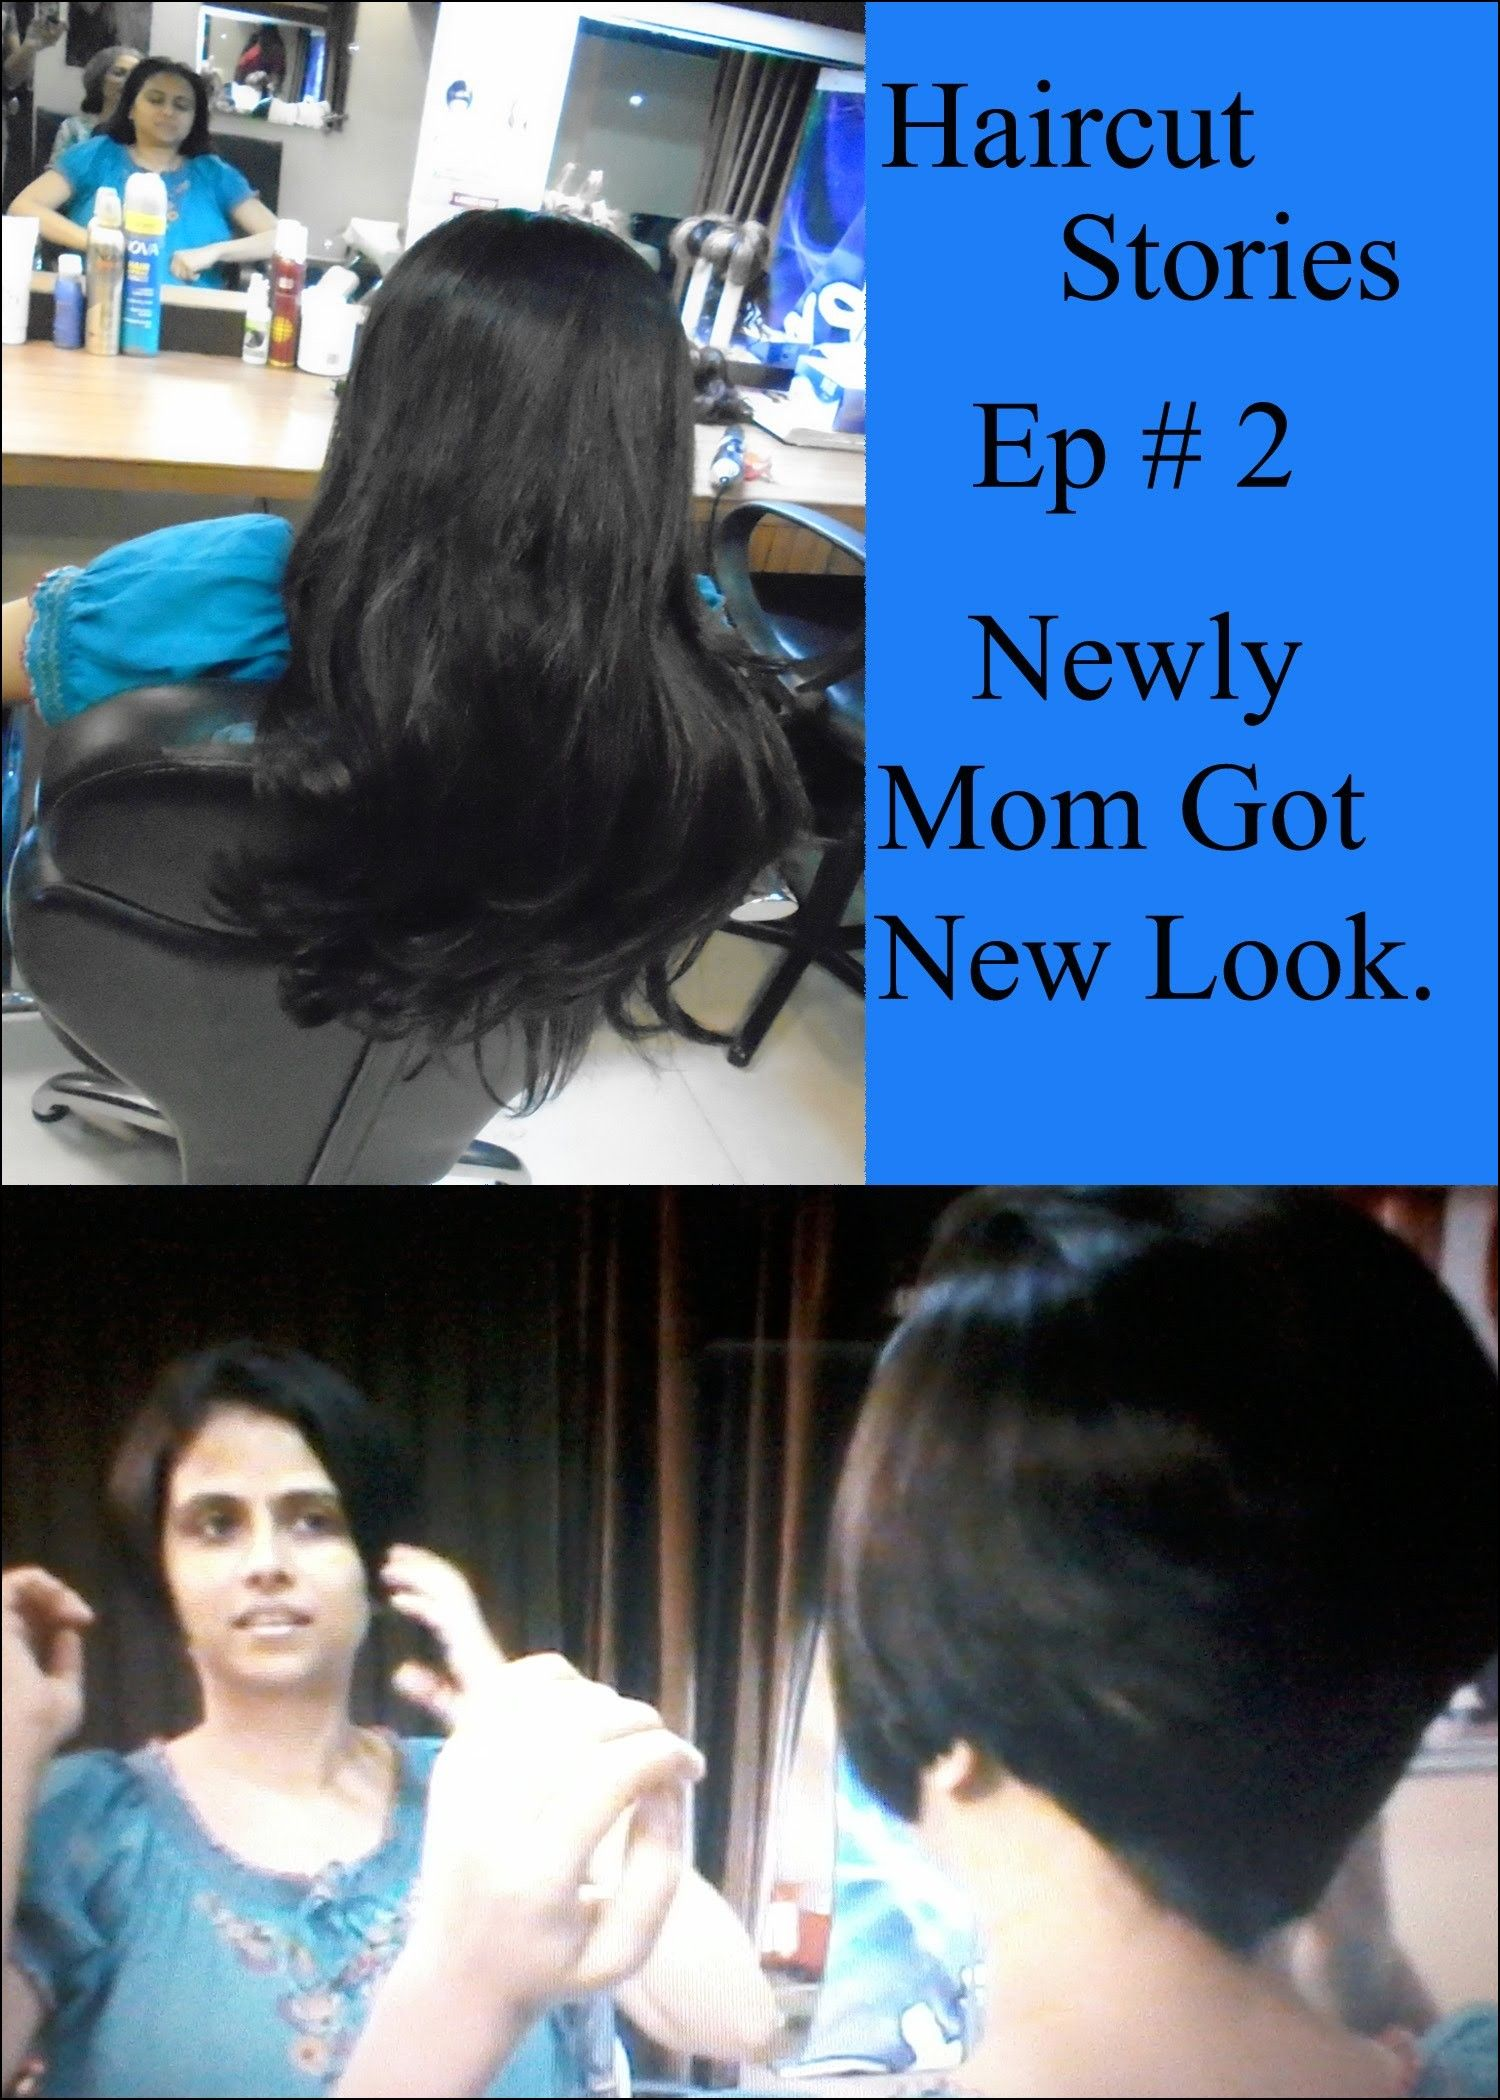 Haircutting story archive hairstyles ideas pinterest